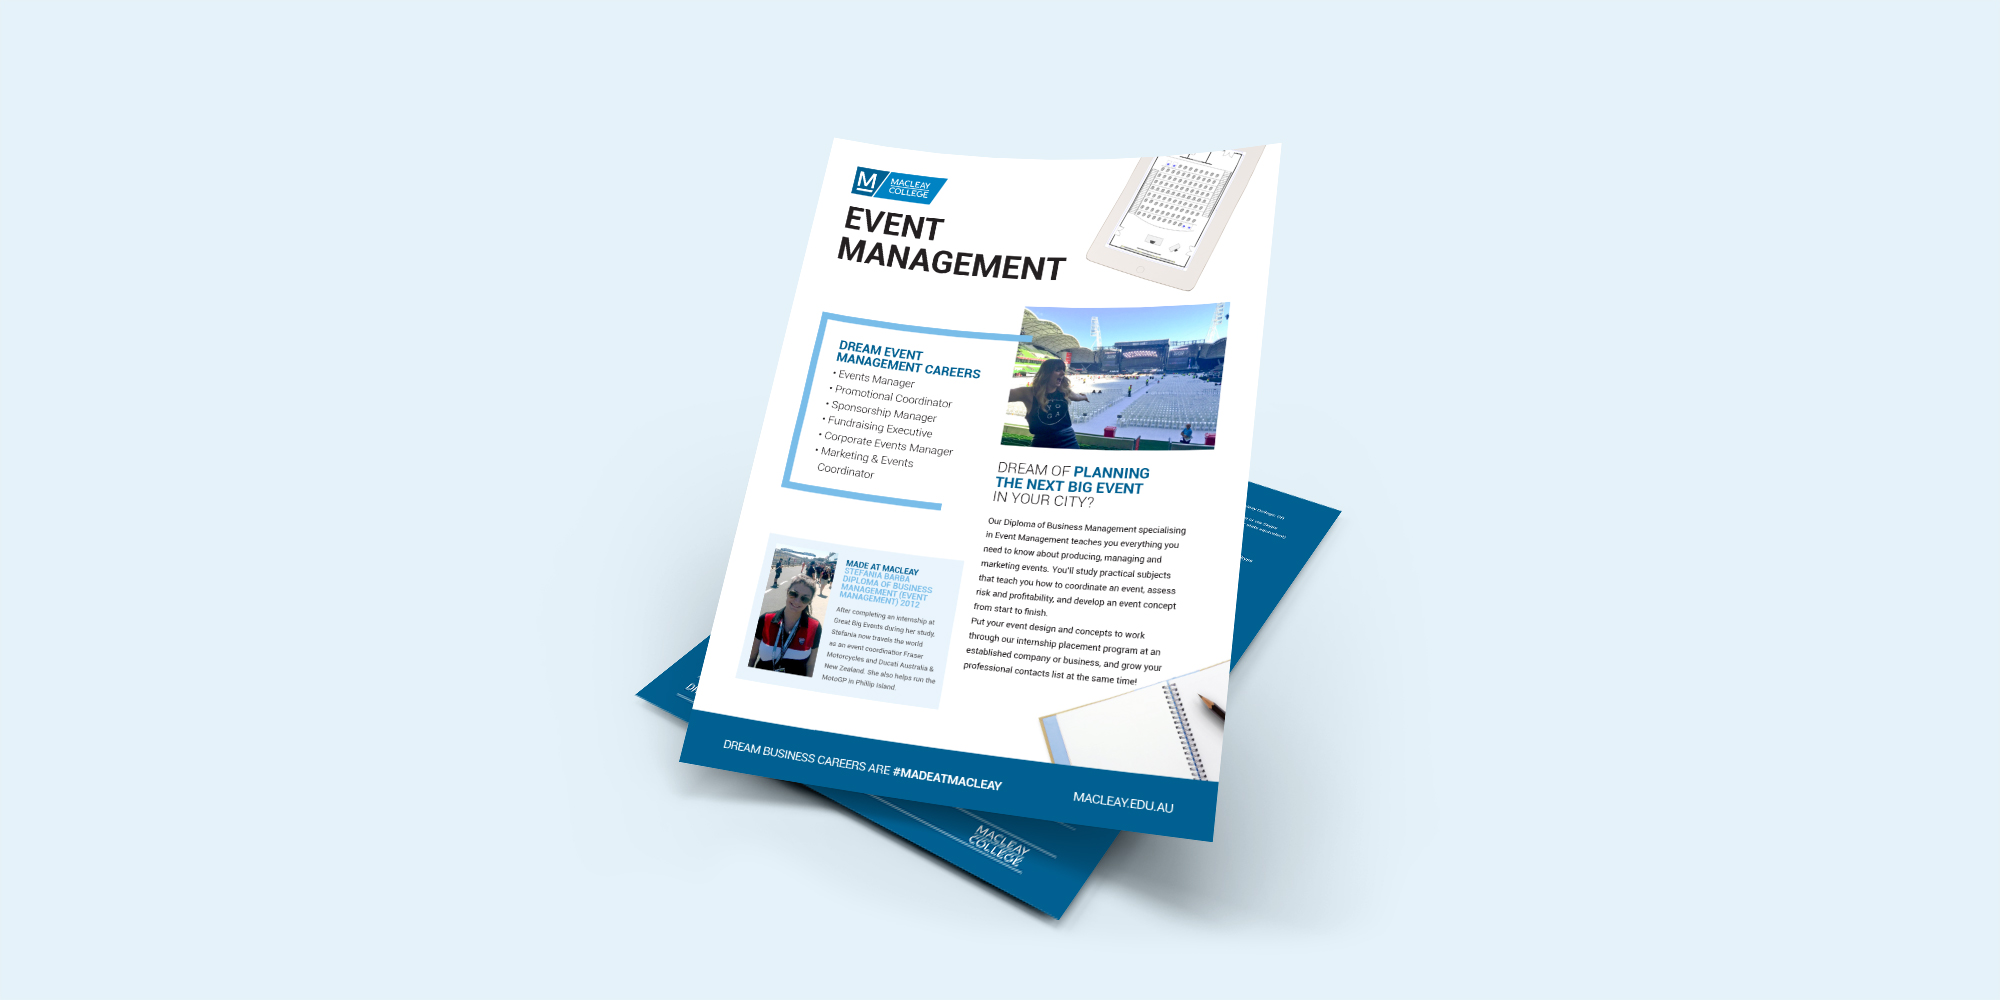 Macleay College Event Management Flyer